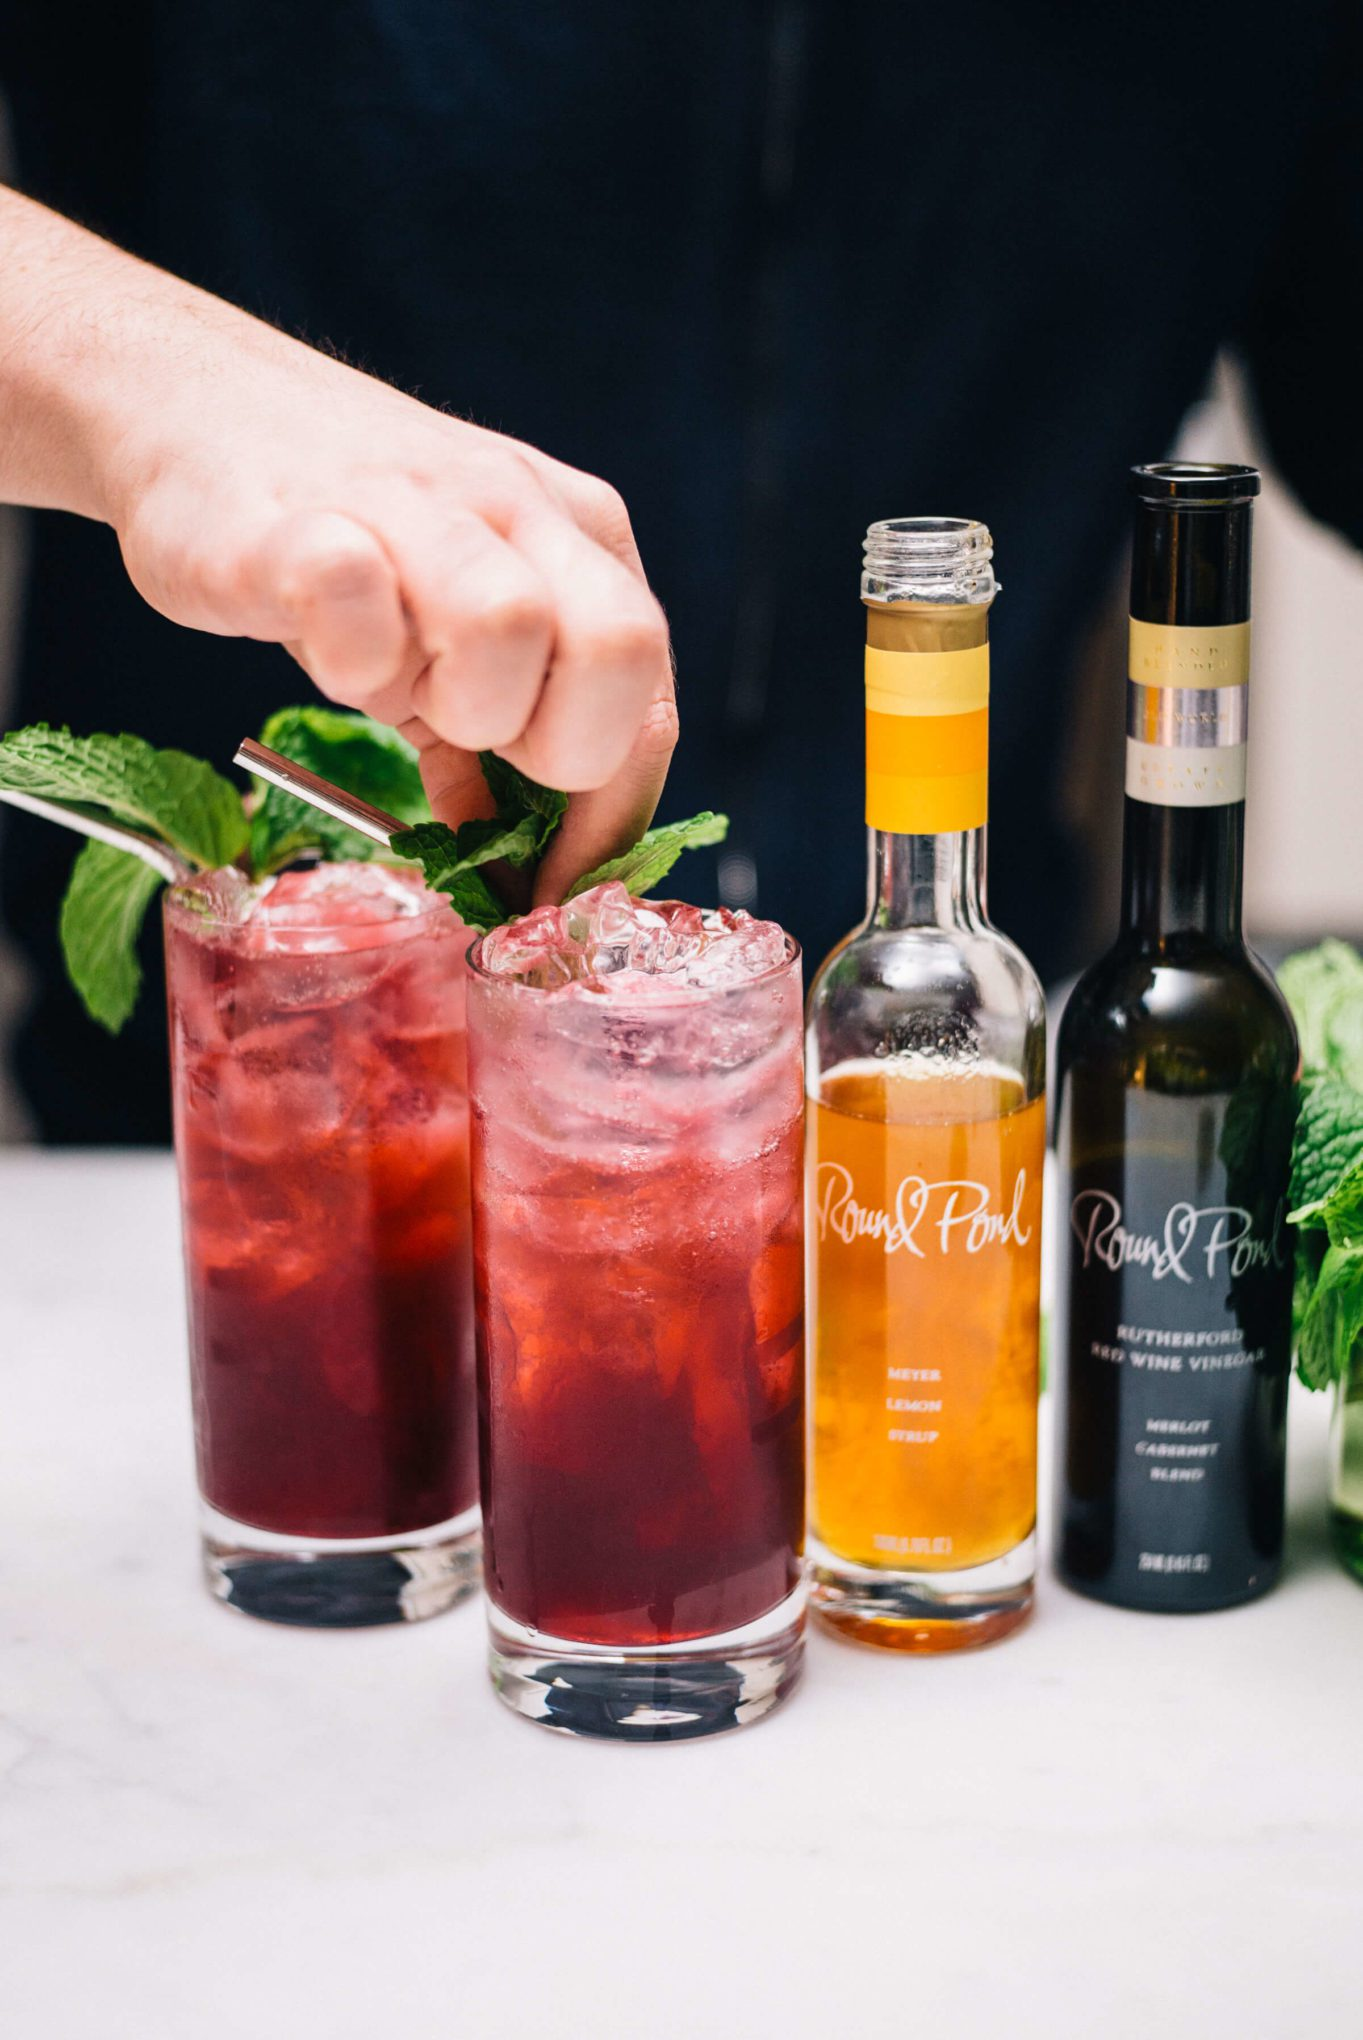 Garnishing a Blueberry Shrub Cocktail with mint | Round Pond Estate Napa Rutherford | The Taste Edit